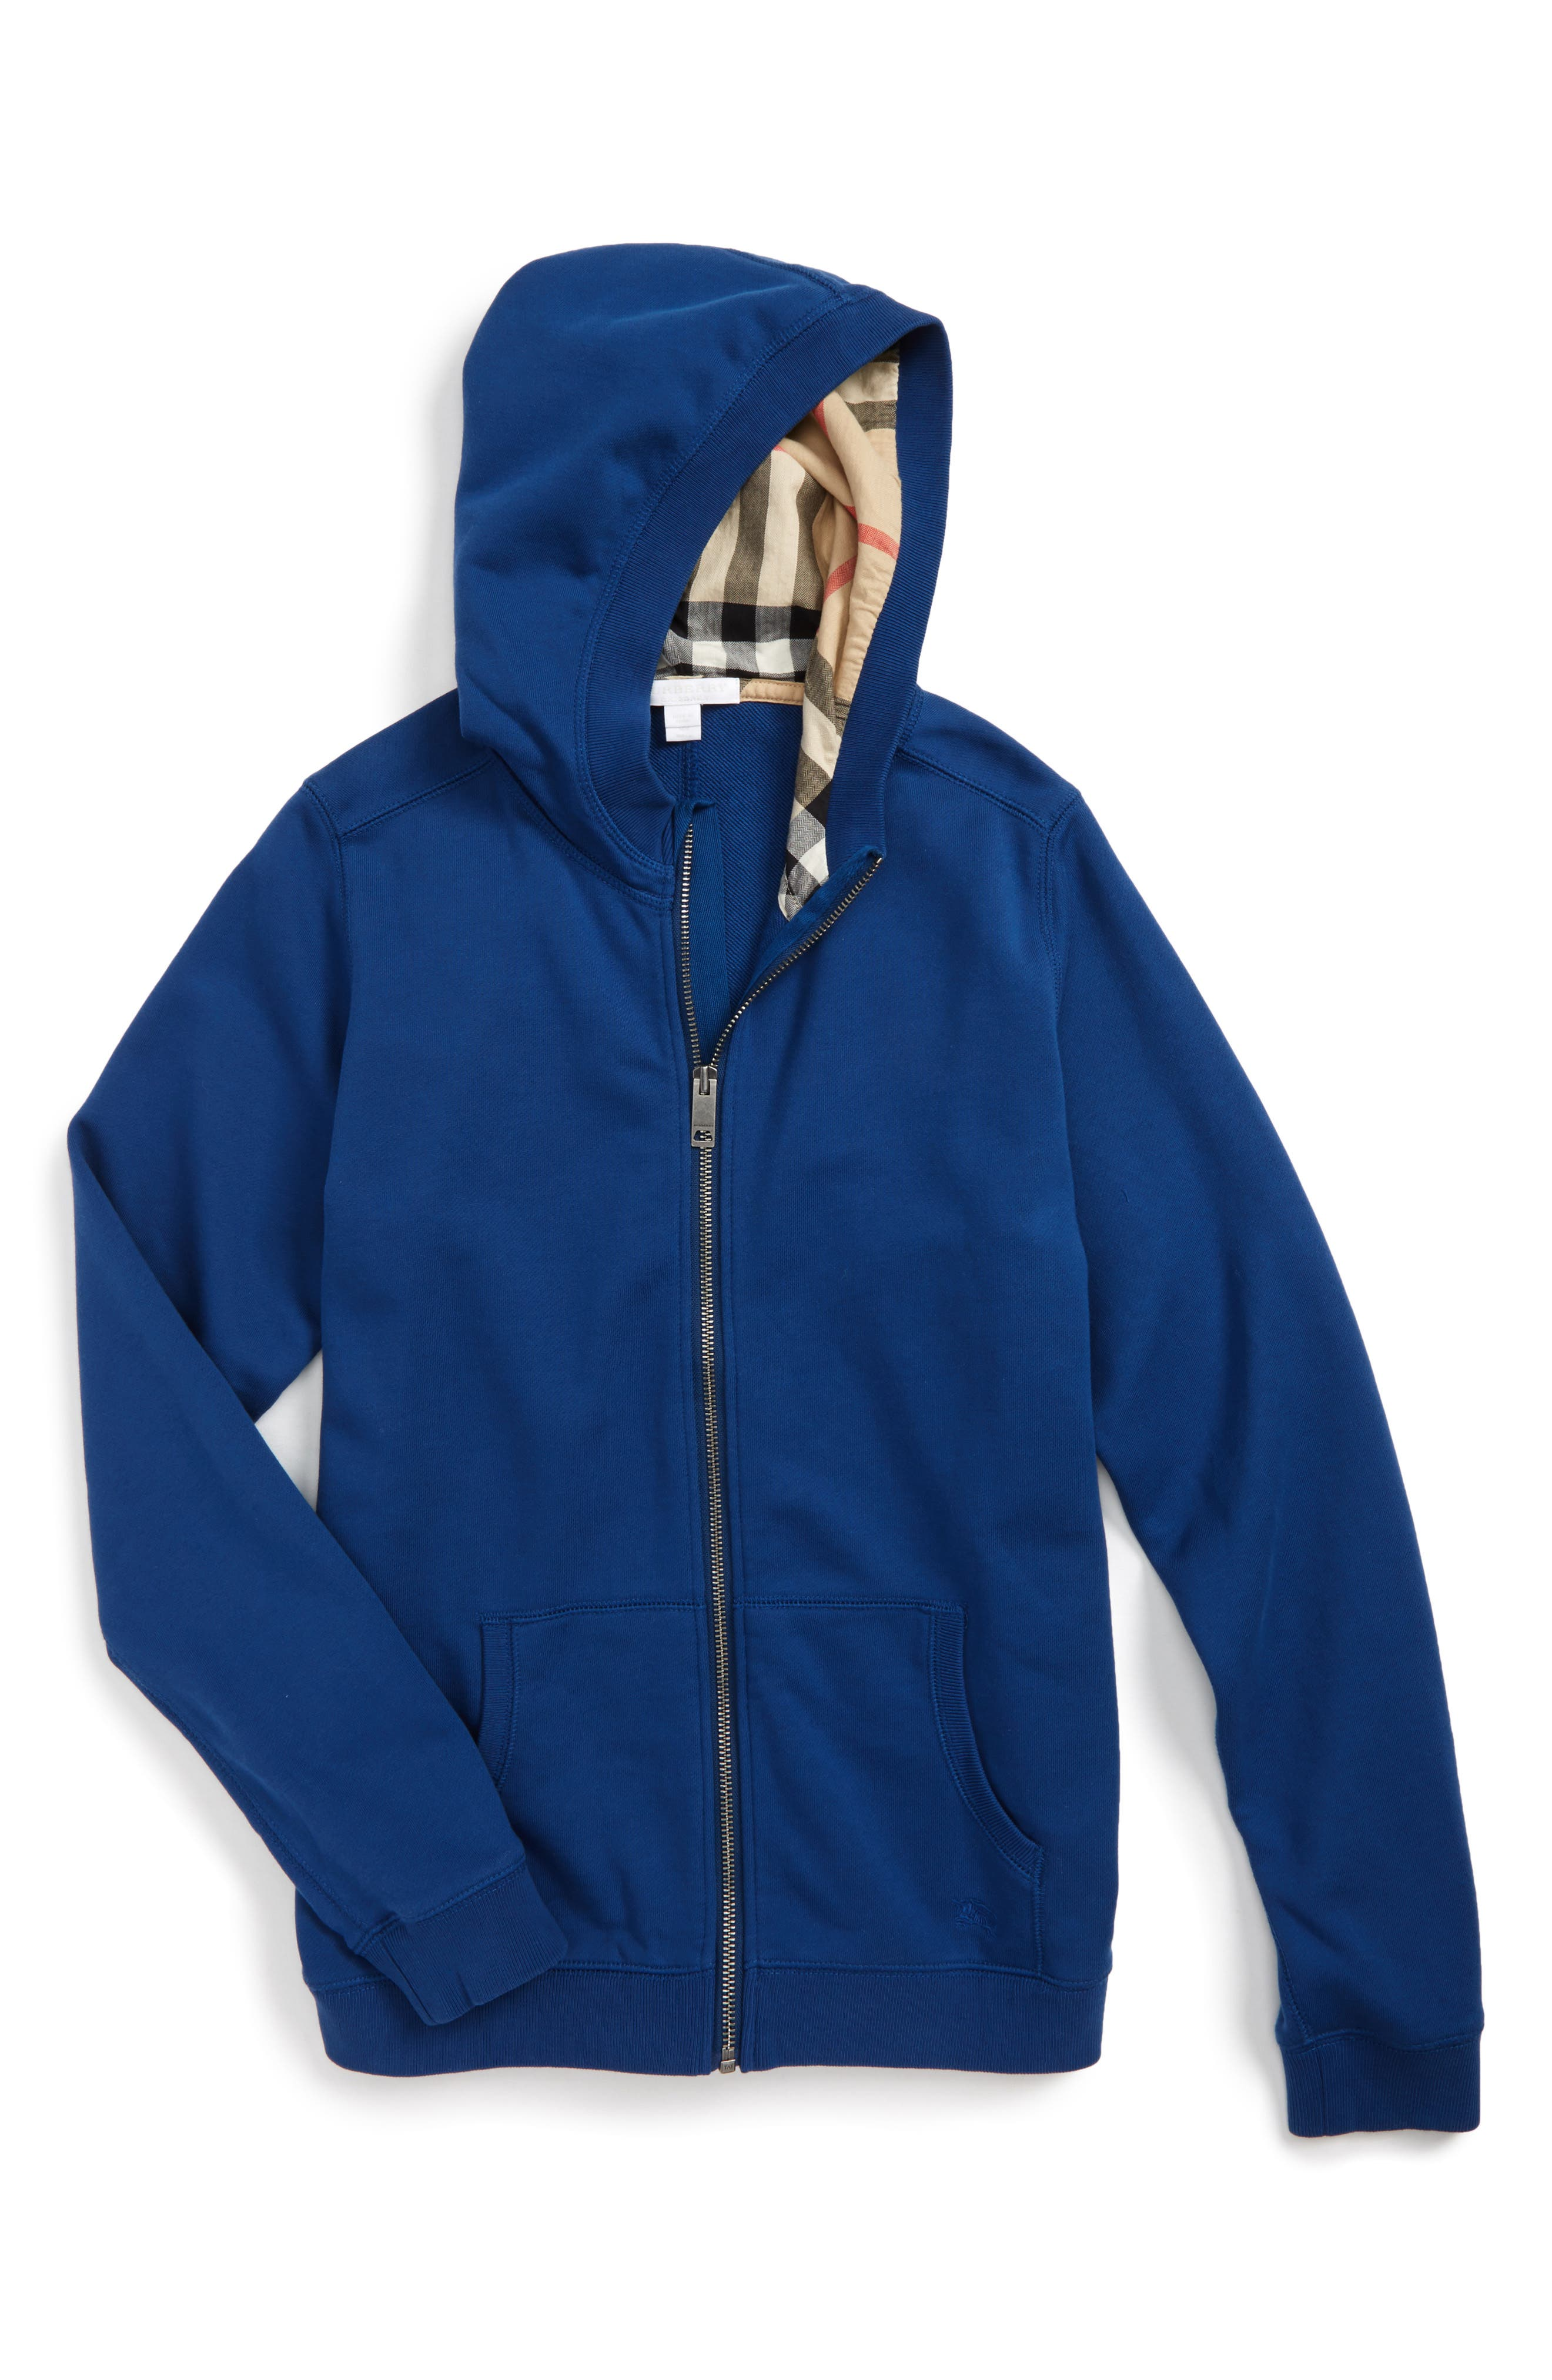 Pearcy Hoodie,                         Main,                         color, 408